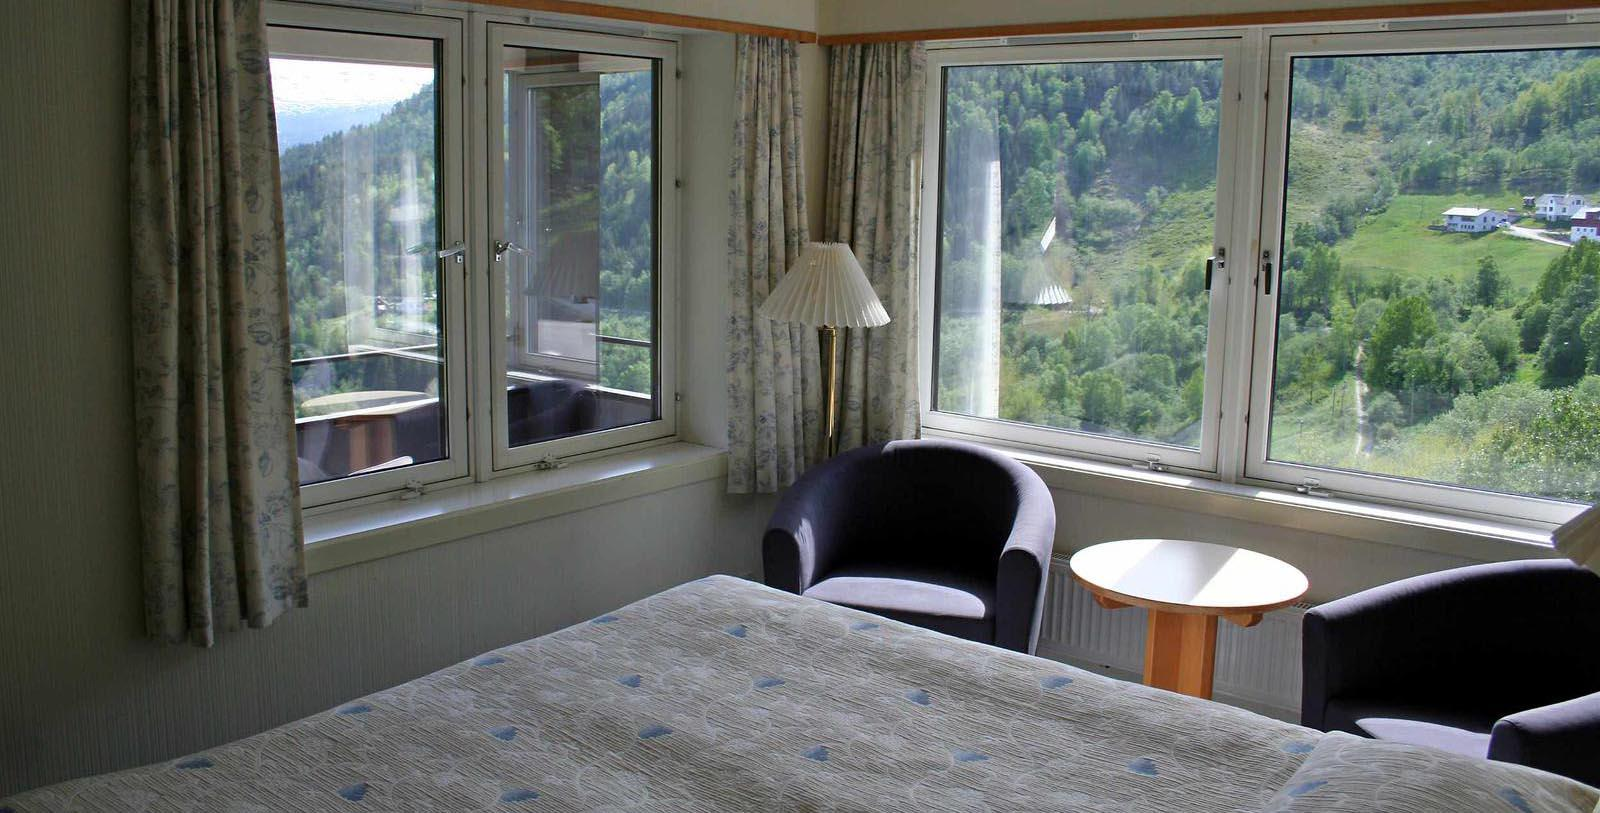 Image of Guestroom at Stalheim Hotel, 1750, Member of Historic Hotels Worldwide, in Stalheim, Norway, Accommodations